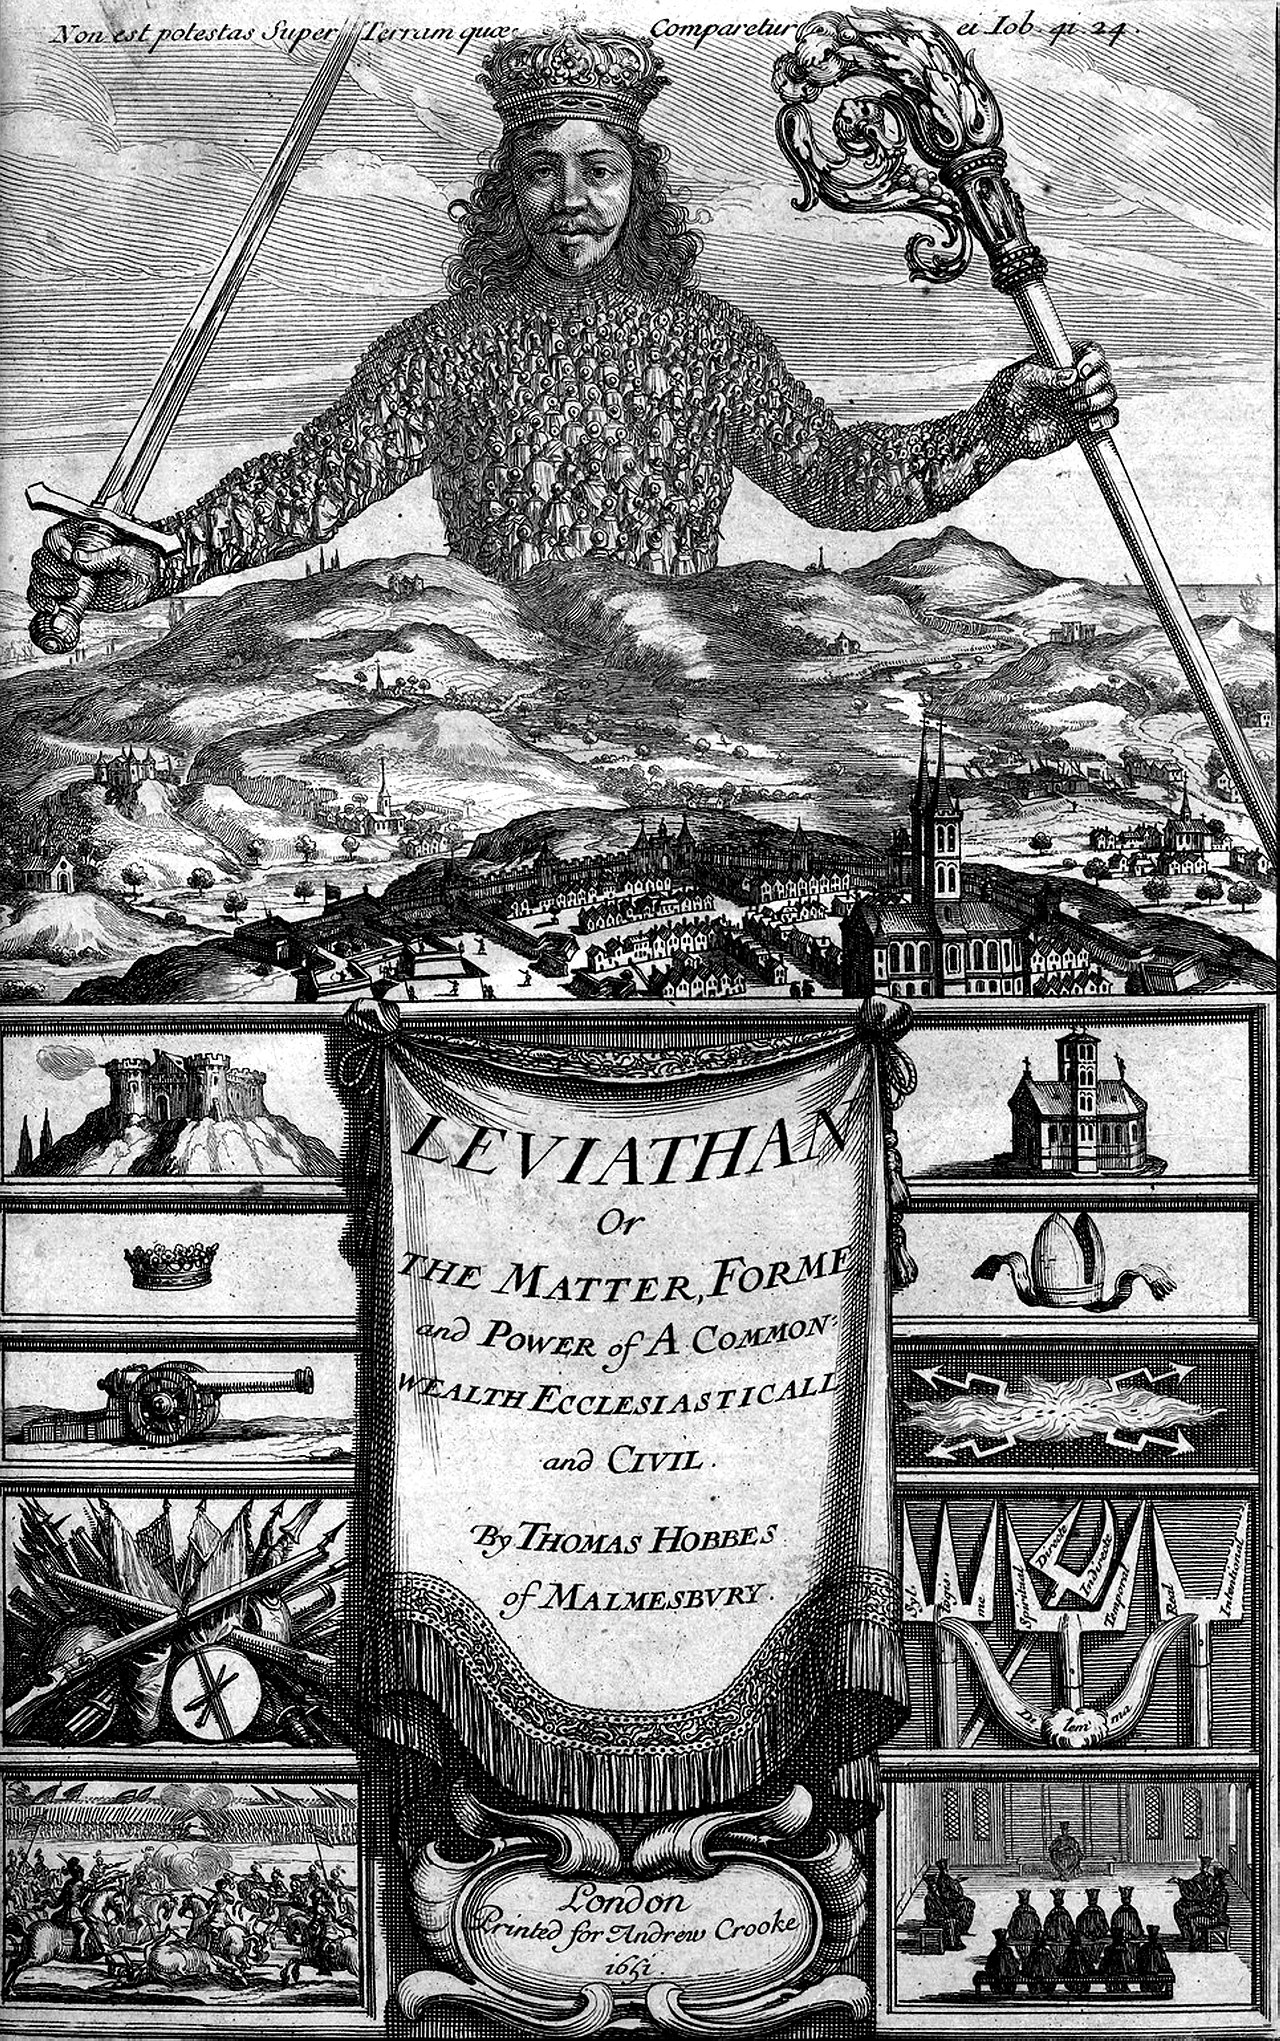 1280px-Leviathan_by_Thomas_Hobbes.jpg